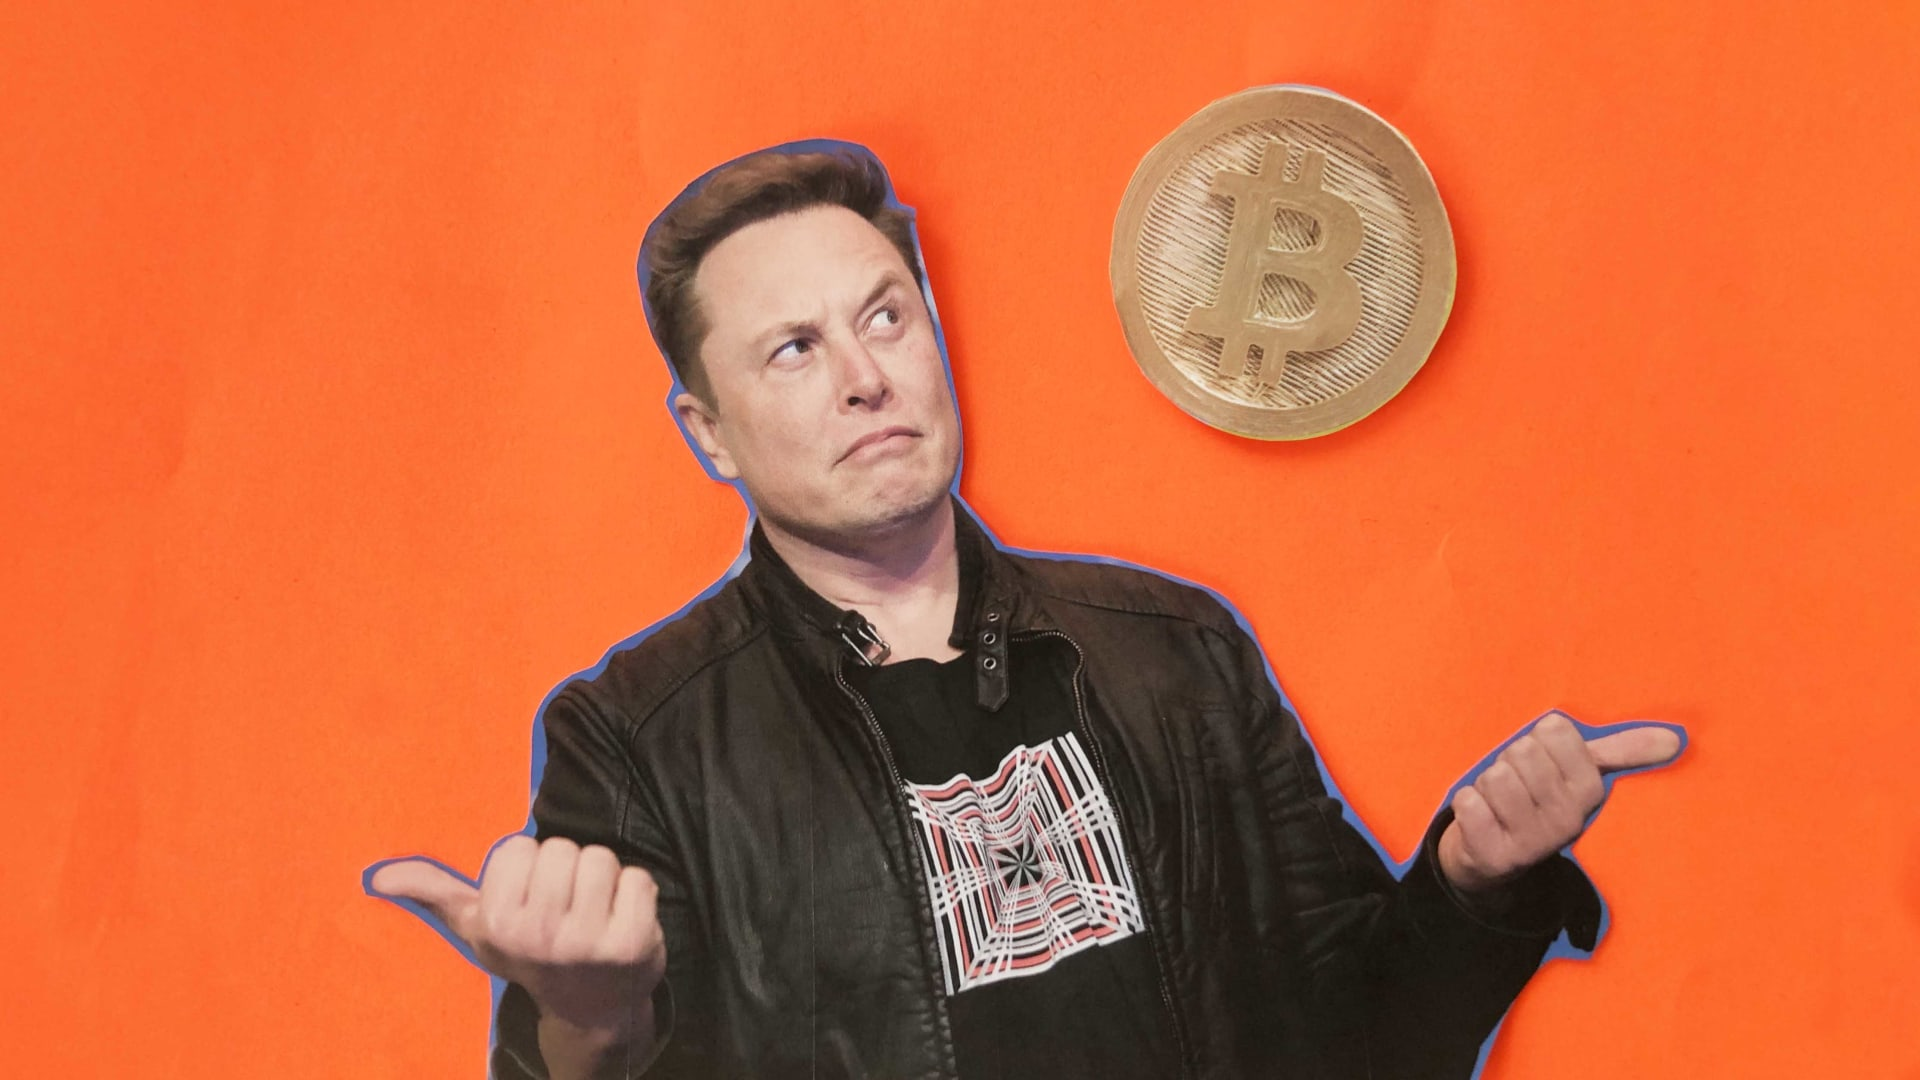 Elon Musk Just Discovered How Much Energy Is Used by Bitcoin. It's Not Good